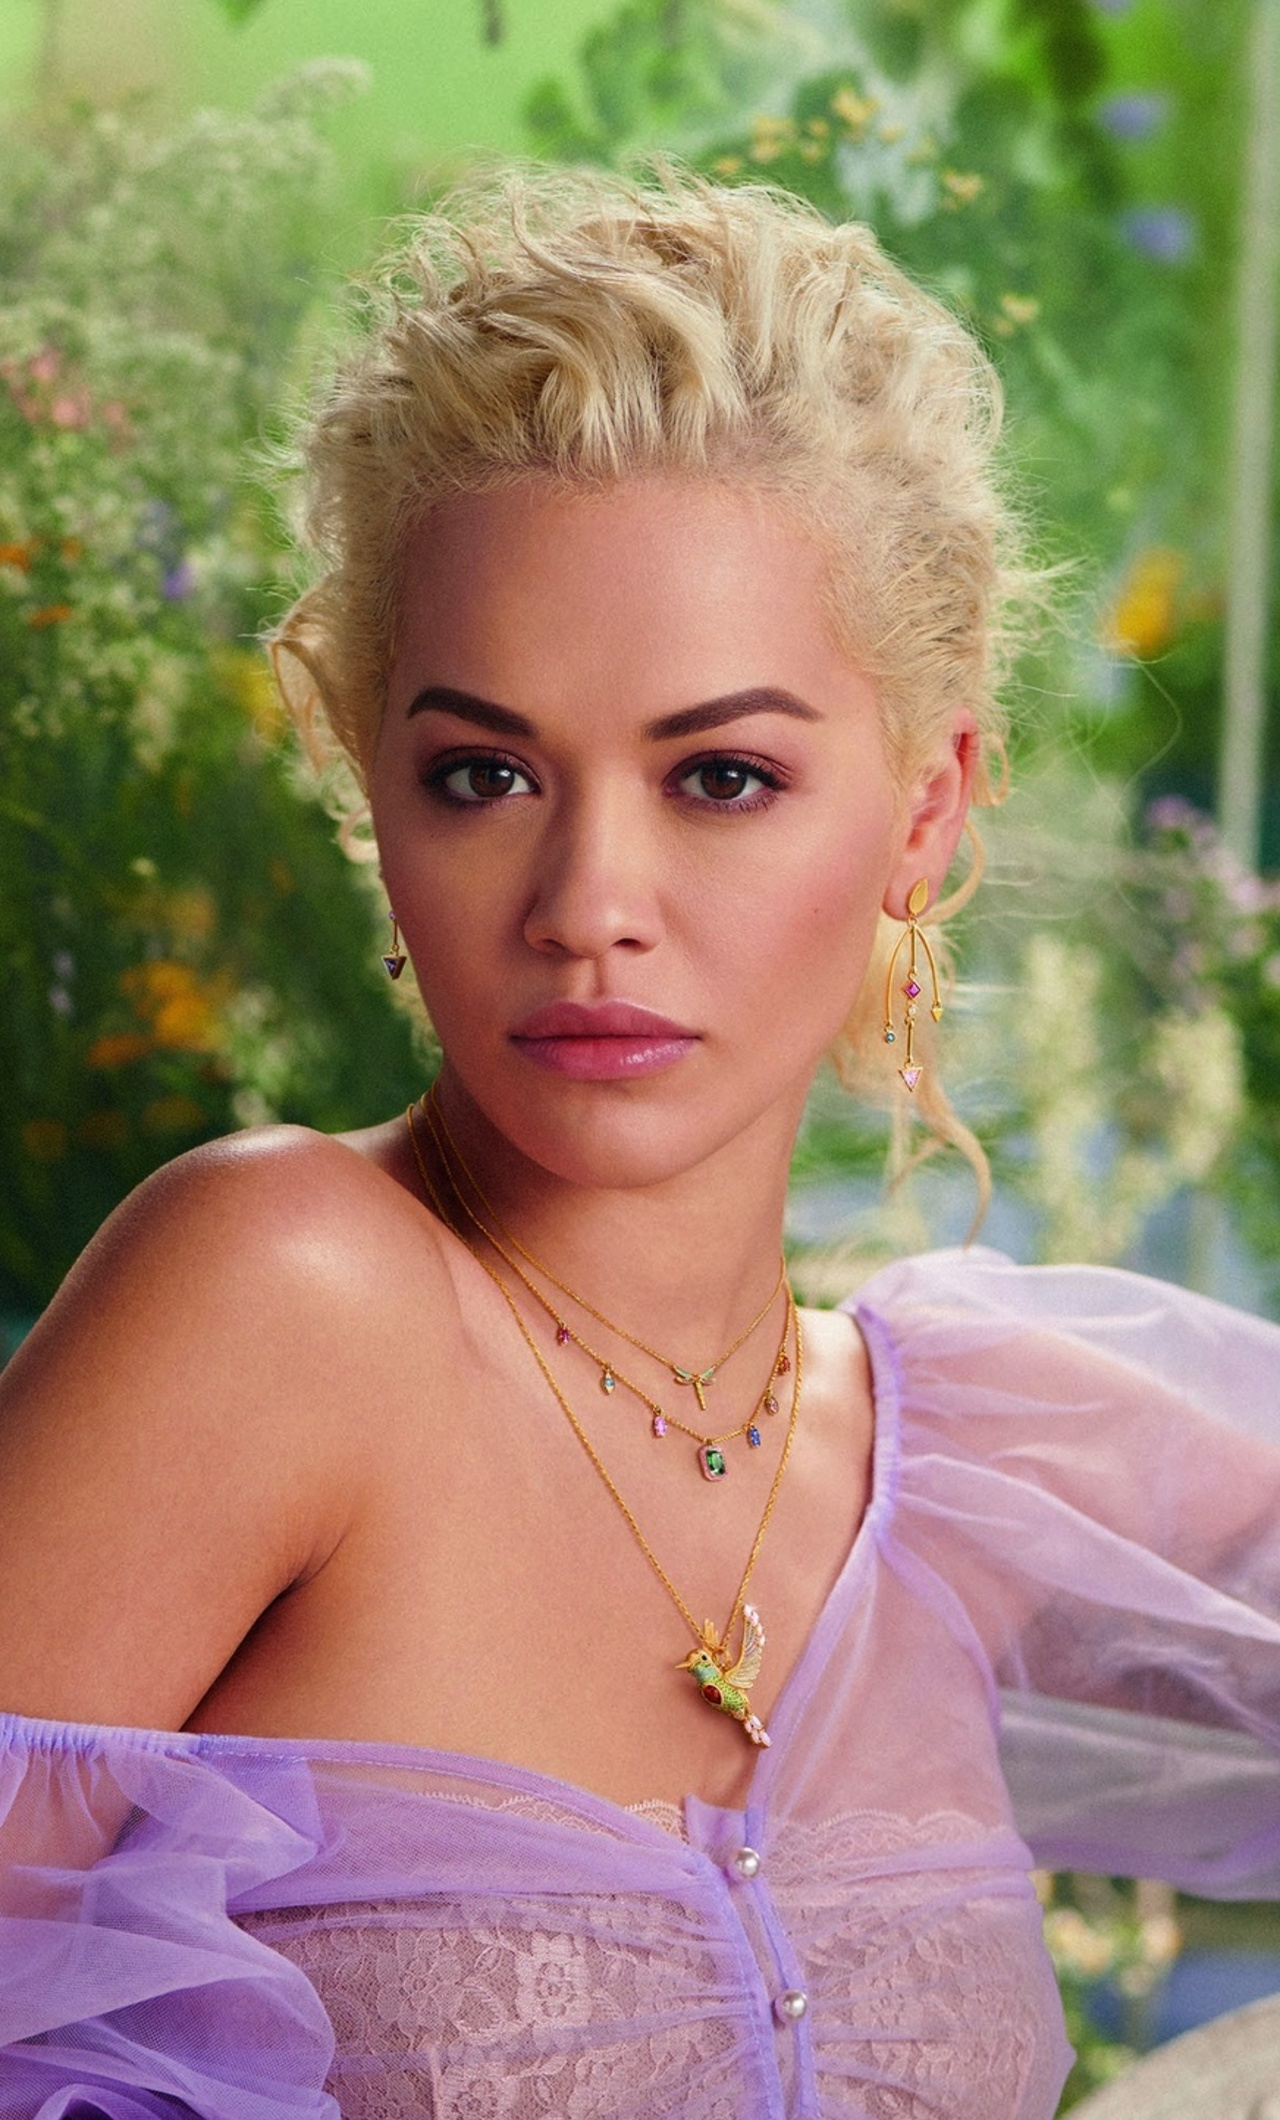 rita-ora-thomas-sabo-spring-summer-collection-2020-ho.jpg